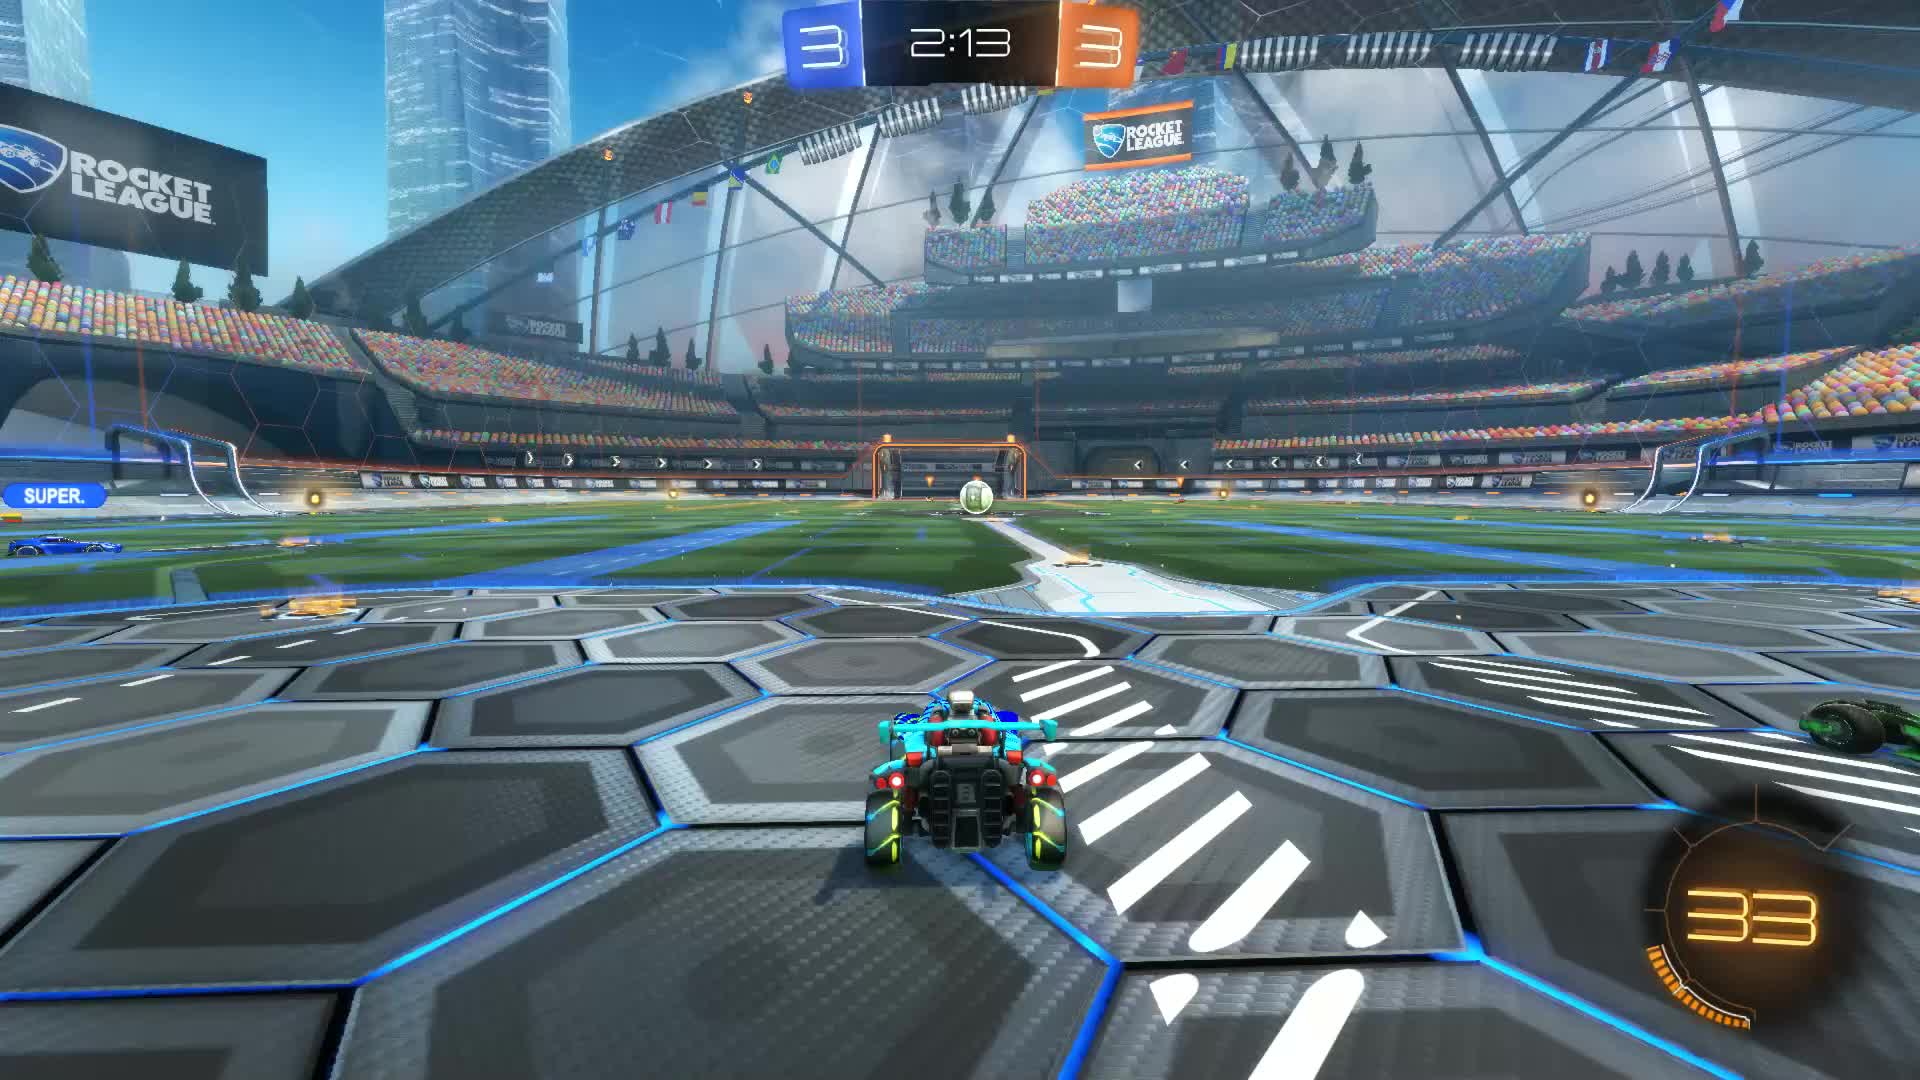 Gif Your Game, GifYourGame, Goal, Hellosh, Rocket League, RocketLeague, Goal 7: Hellosh GIFs